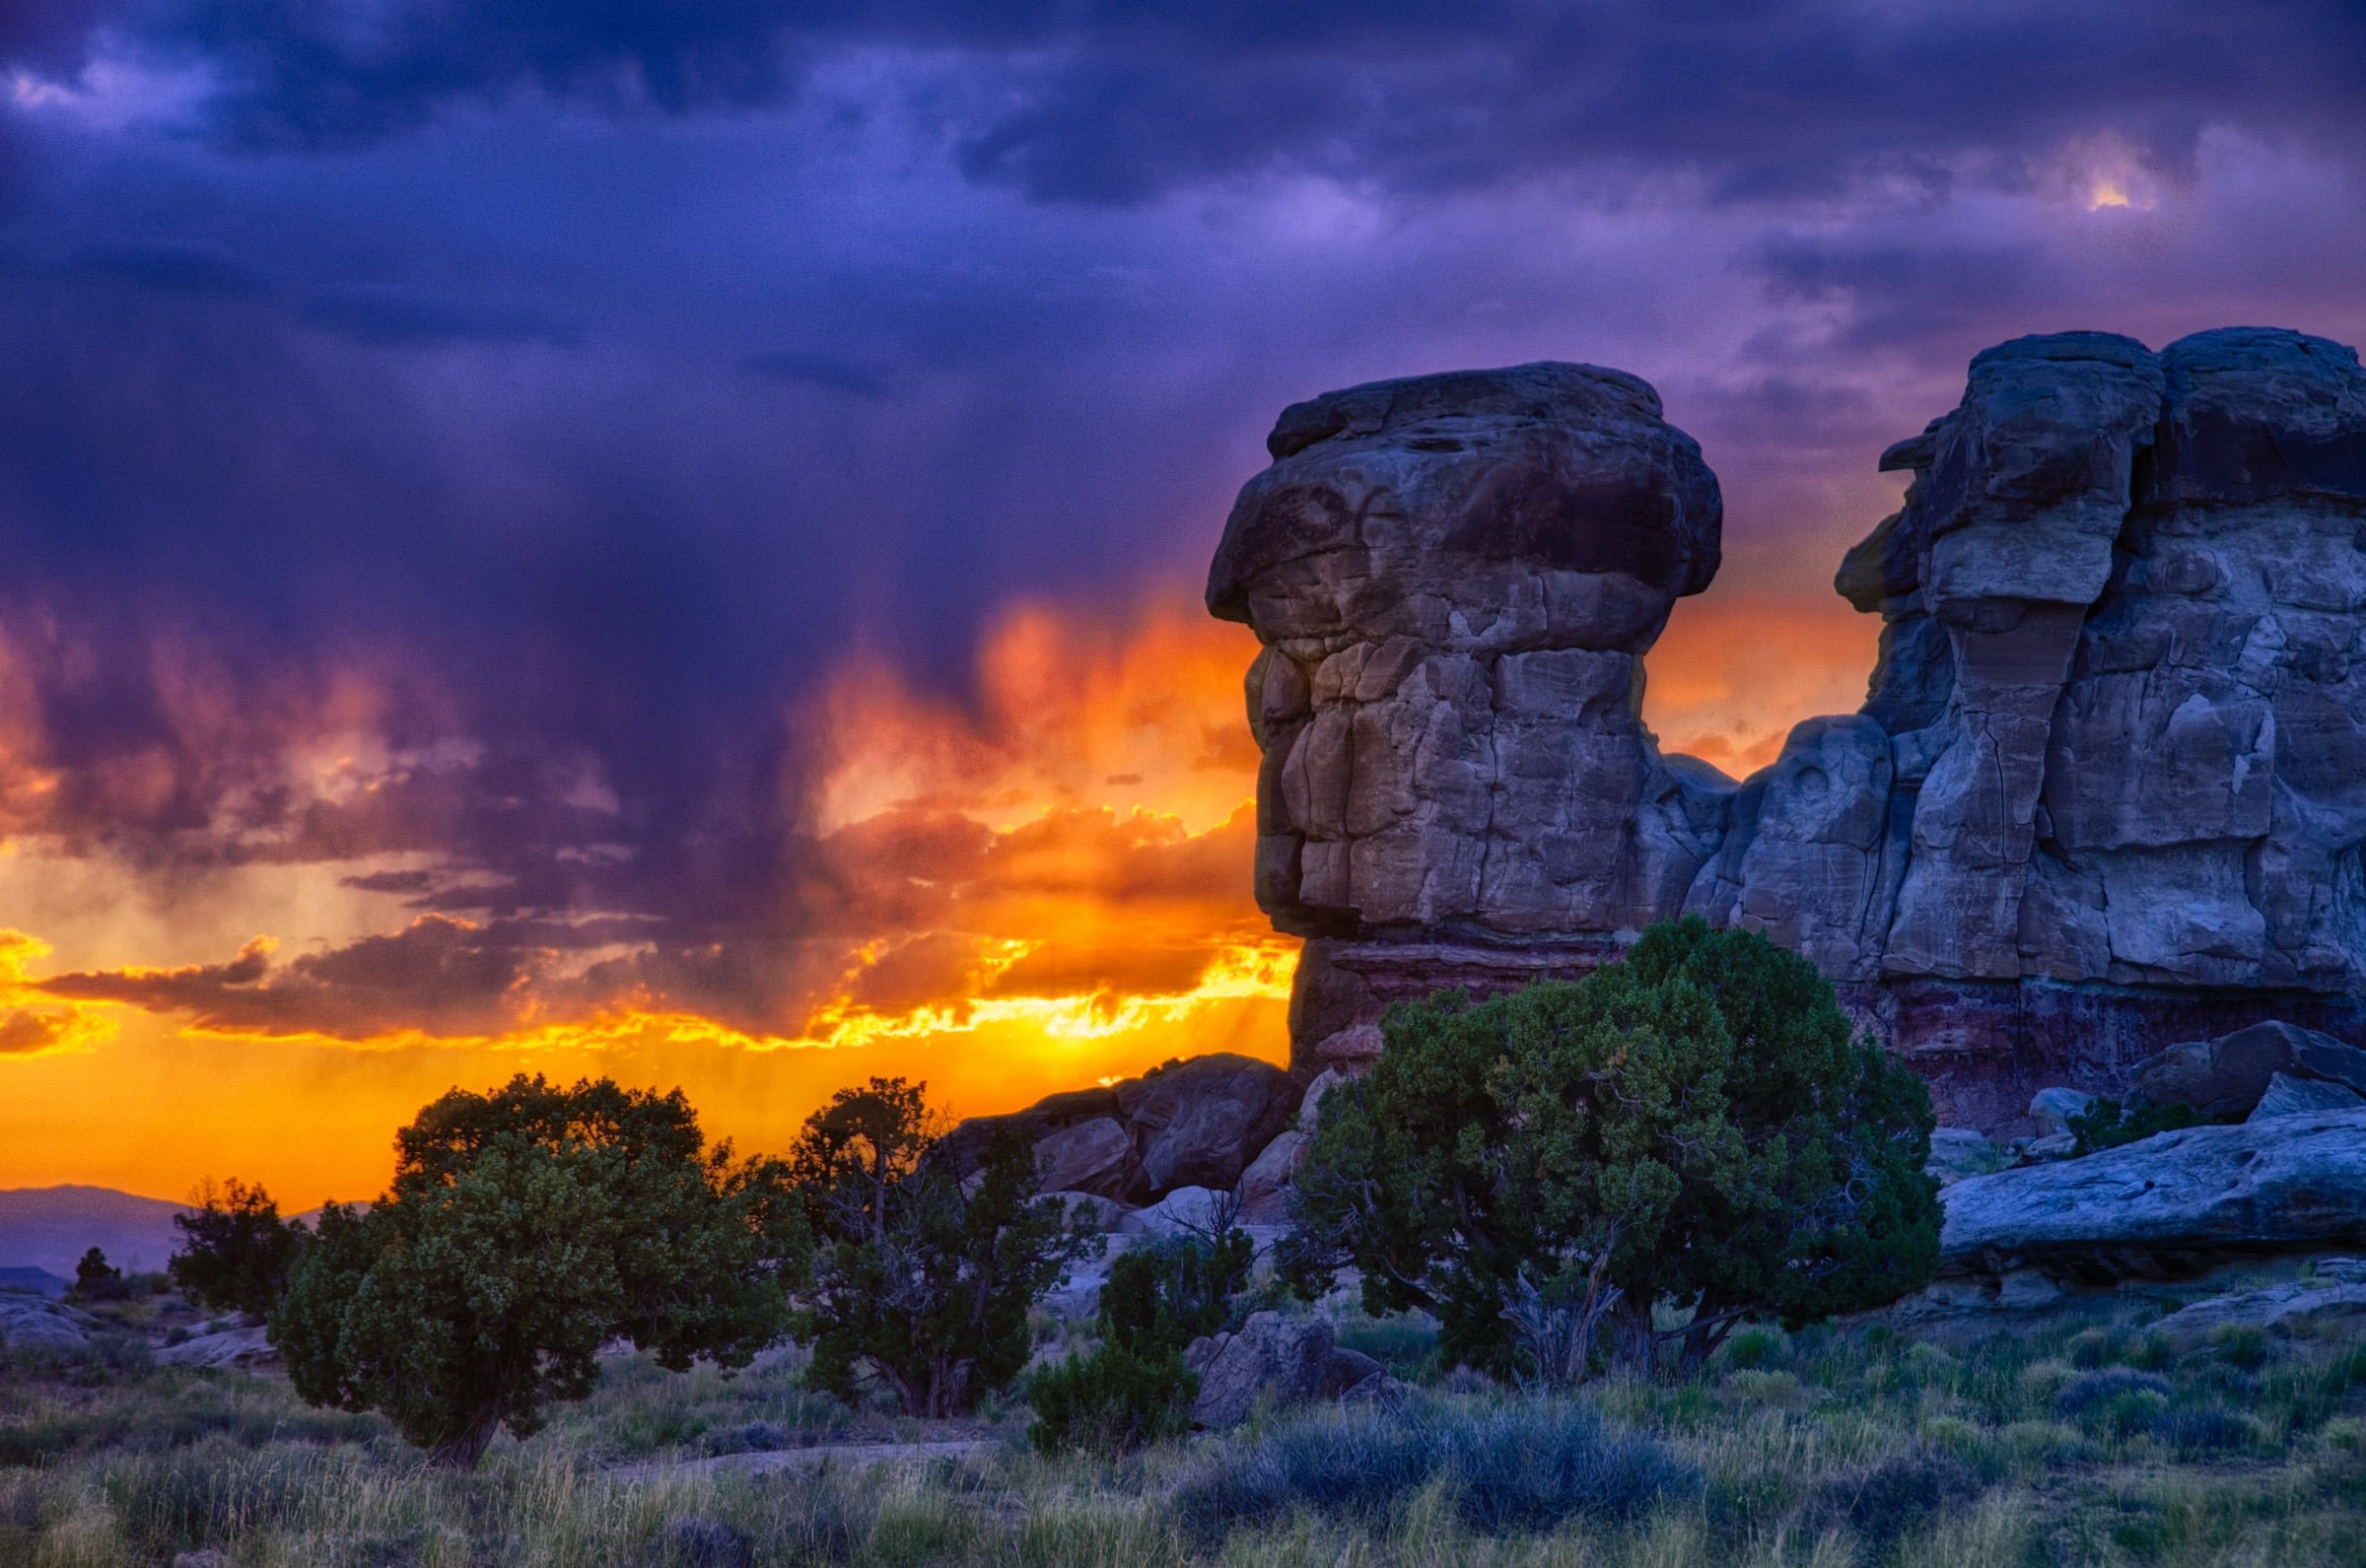 Sunset behind rock outcrop along Caineville Wash Road near Capitol Reef National Park. The projecting rock looked amazingly like a Mayan carving of a skull.